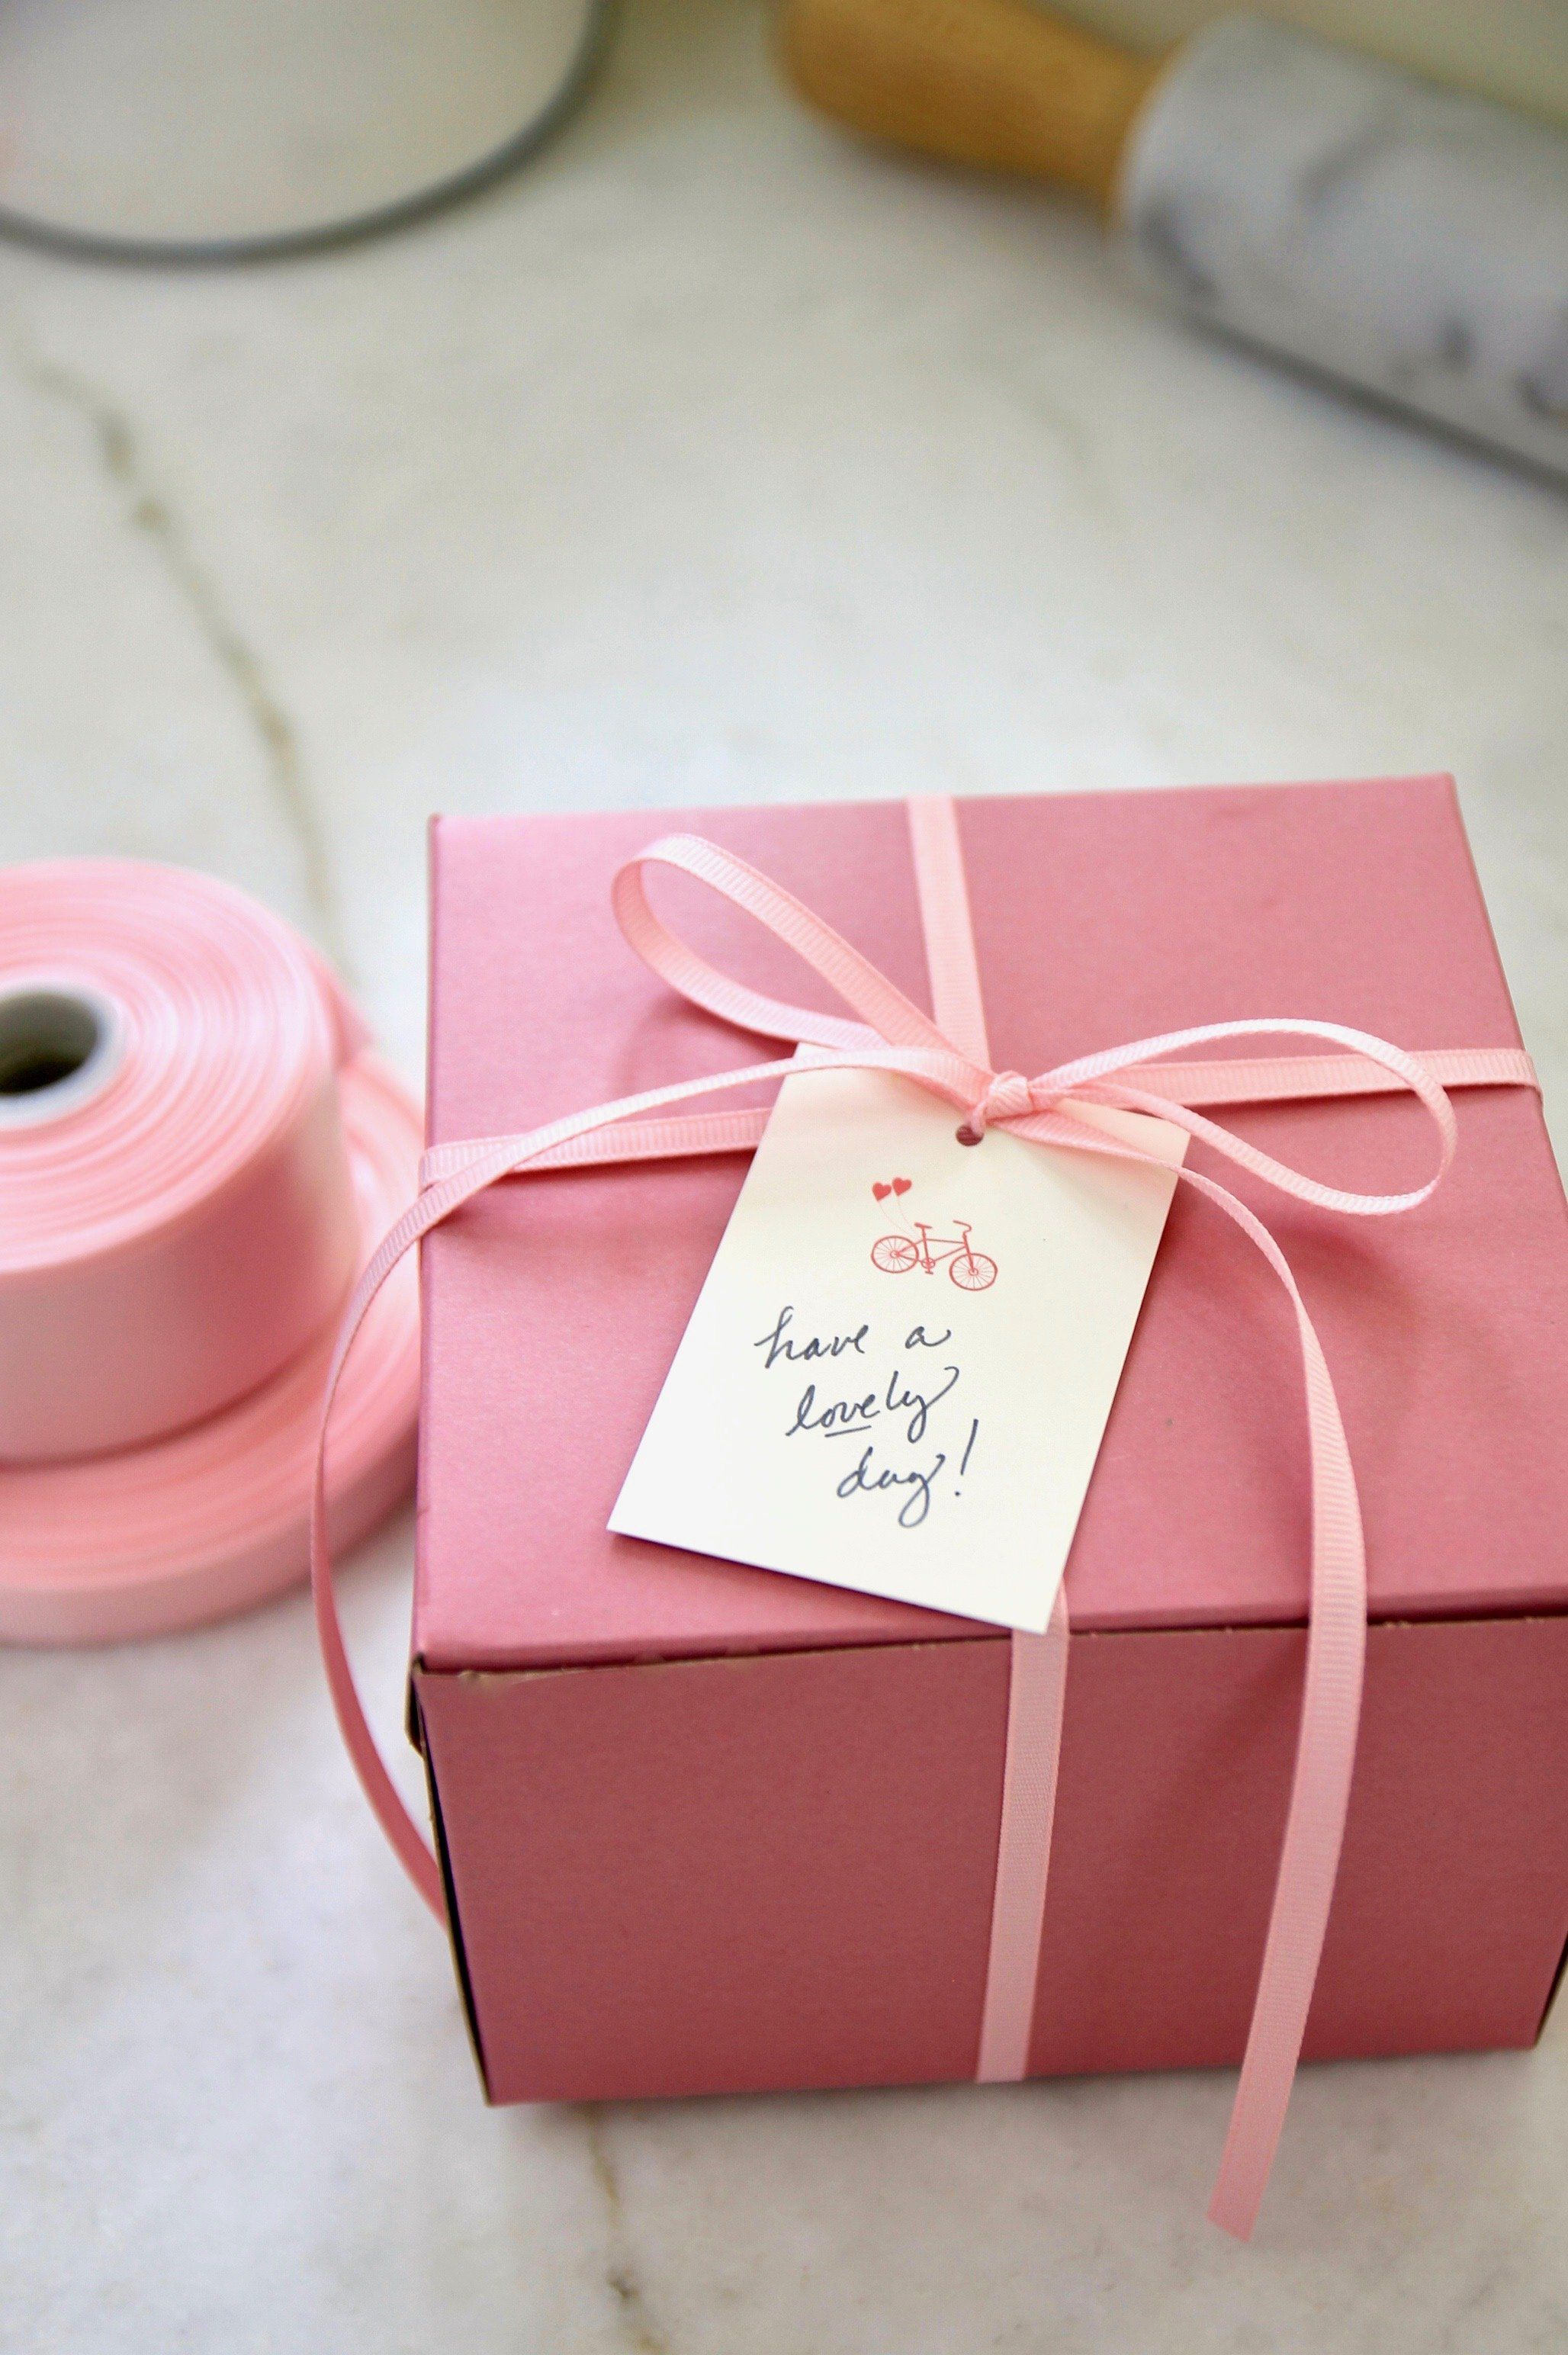 Medium Bakery Boxes, Pink - Set of 5 | Small bakery and Bakeries